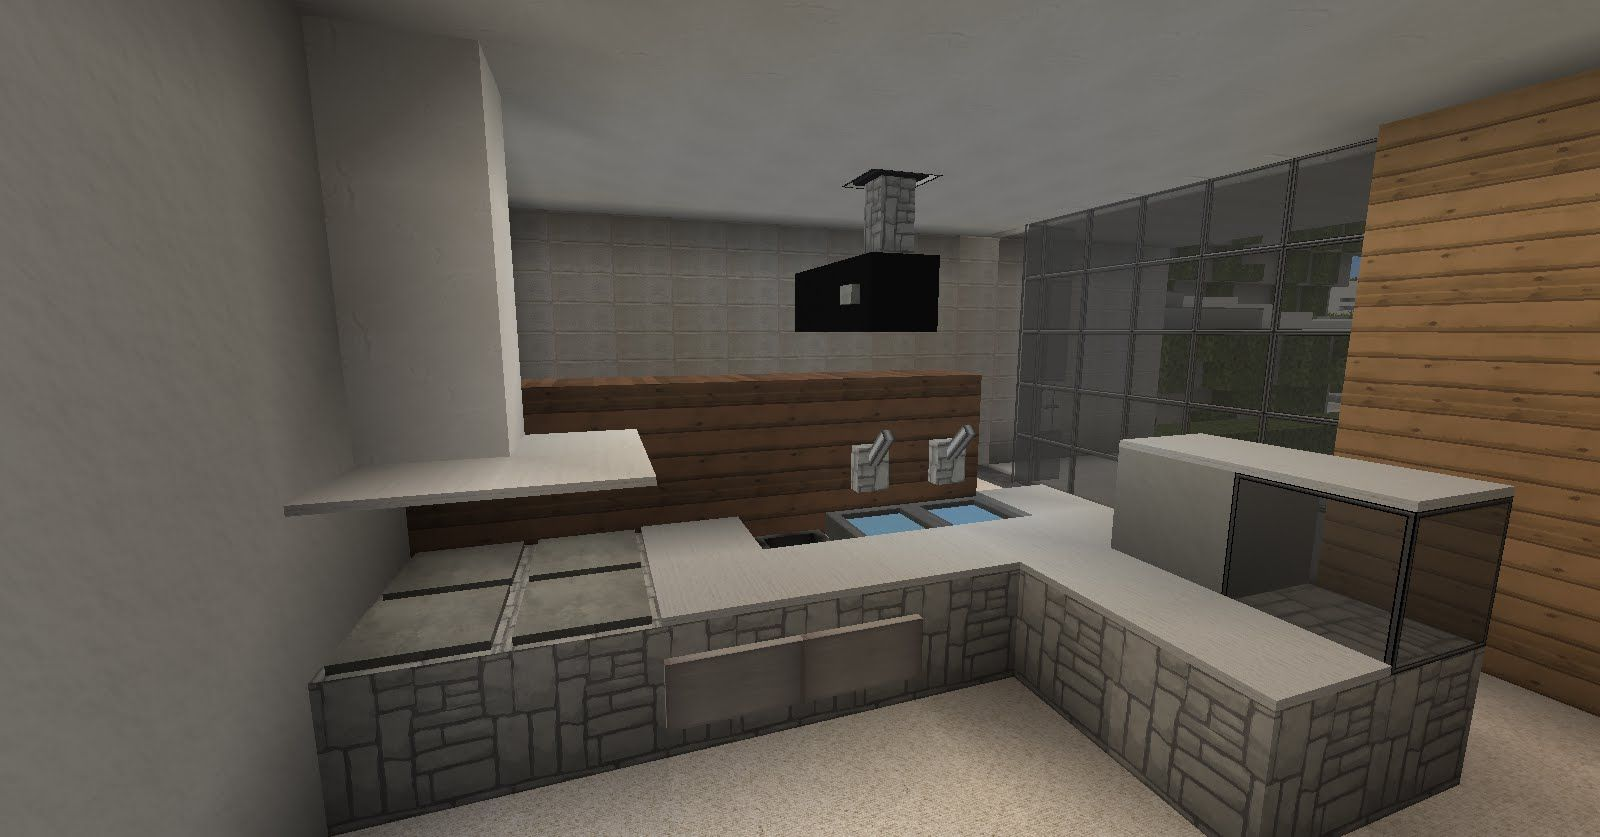 MINECRAFT TUTO - DECO INTERIEUR : MEUBLES 2/2 | minecraft ...